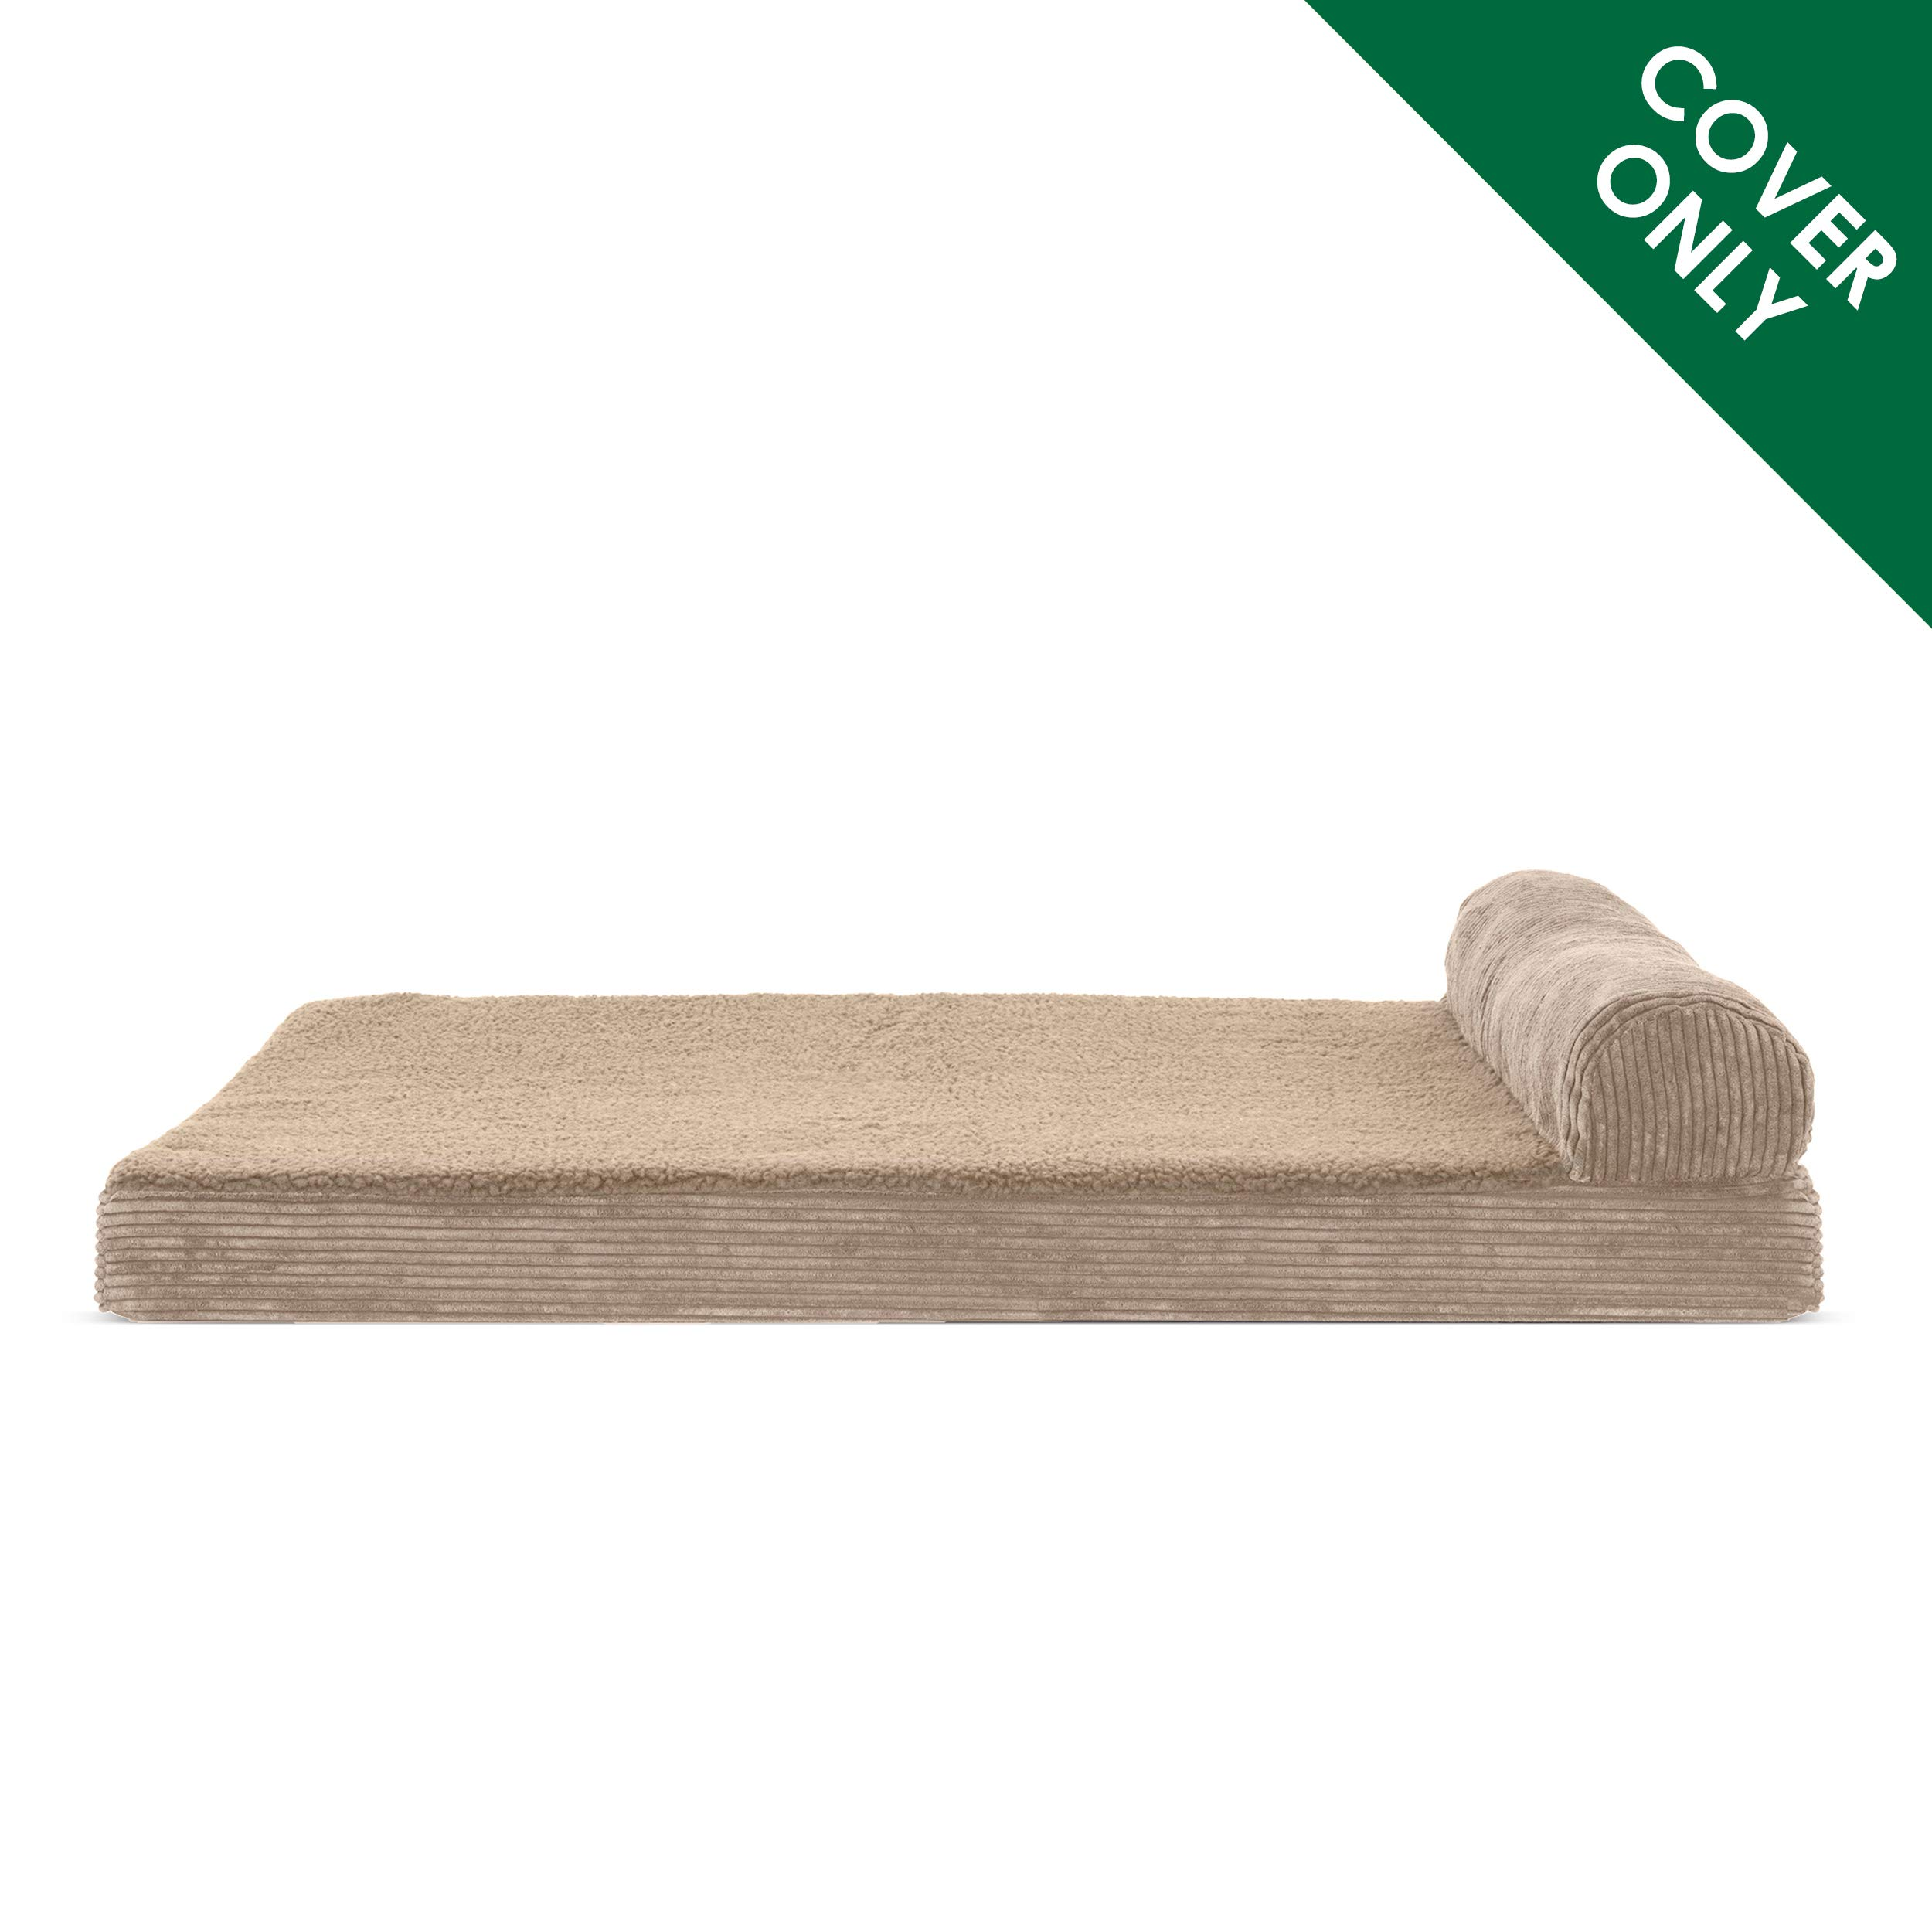 Furhaven Pet Dog Bed | Faux Fleece & Corduroy Chaise Lounge Living Room Couch Pet Bed Replacement Cover for Dogs & Cats, Sandstone, Jumbo Plus by Furhaven